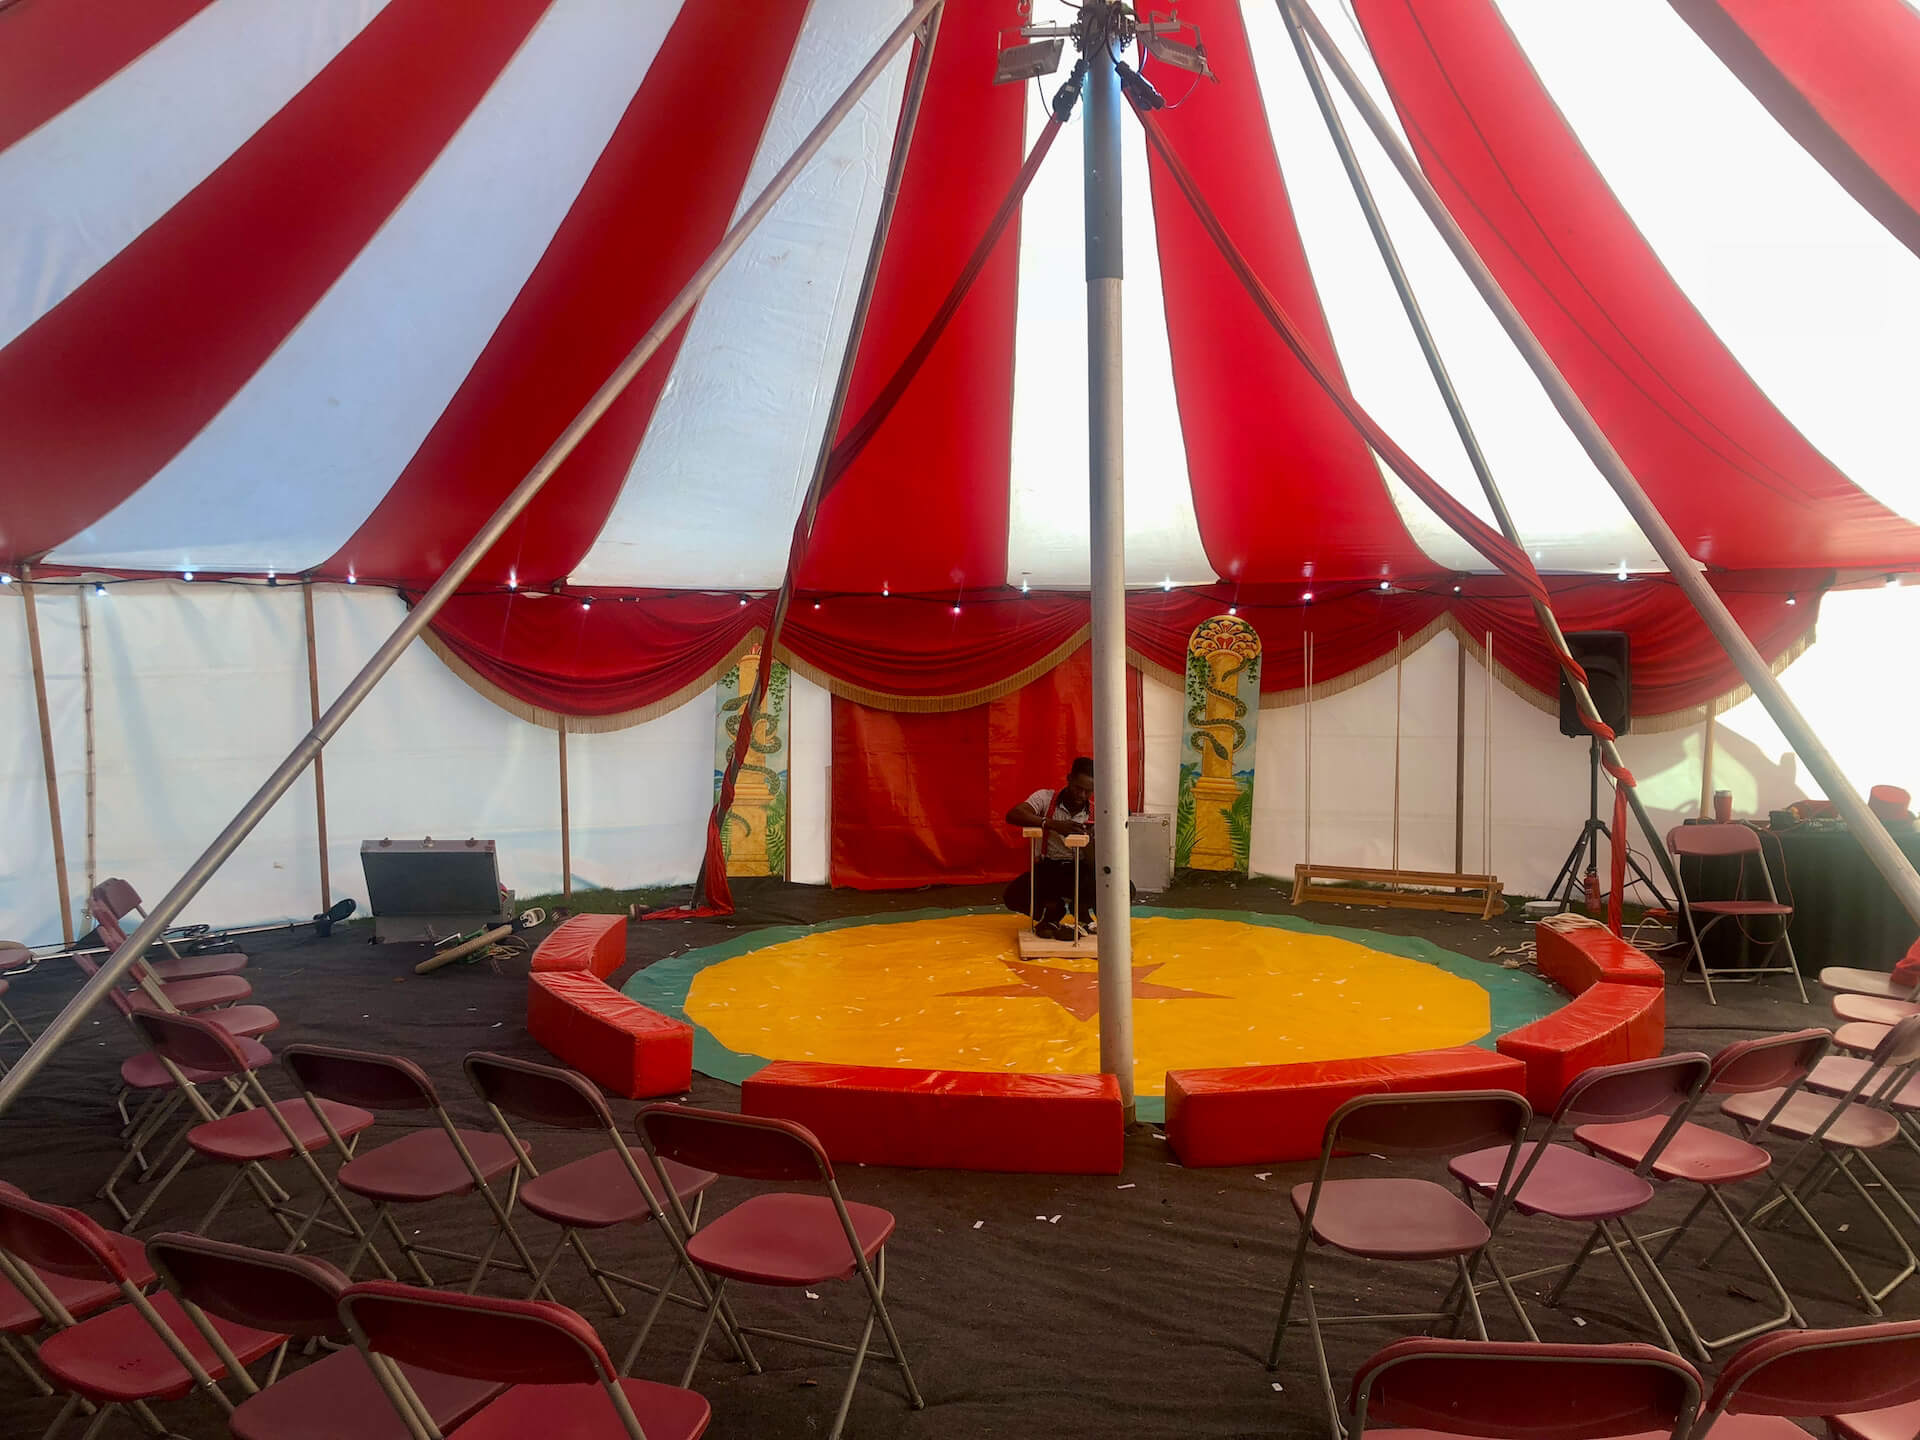 Small circus show ring in tent